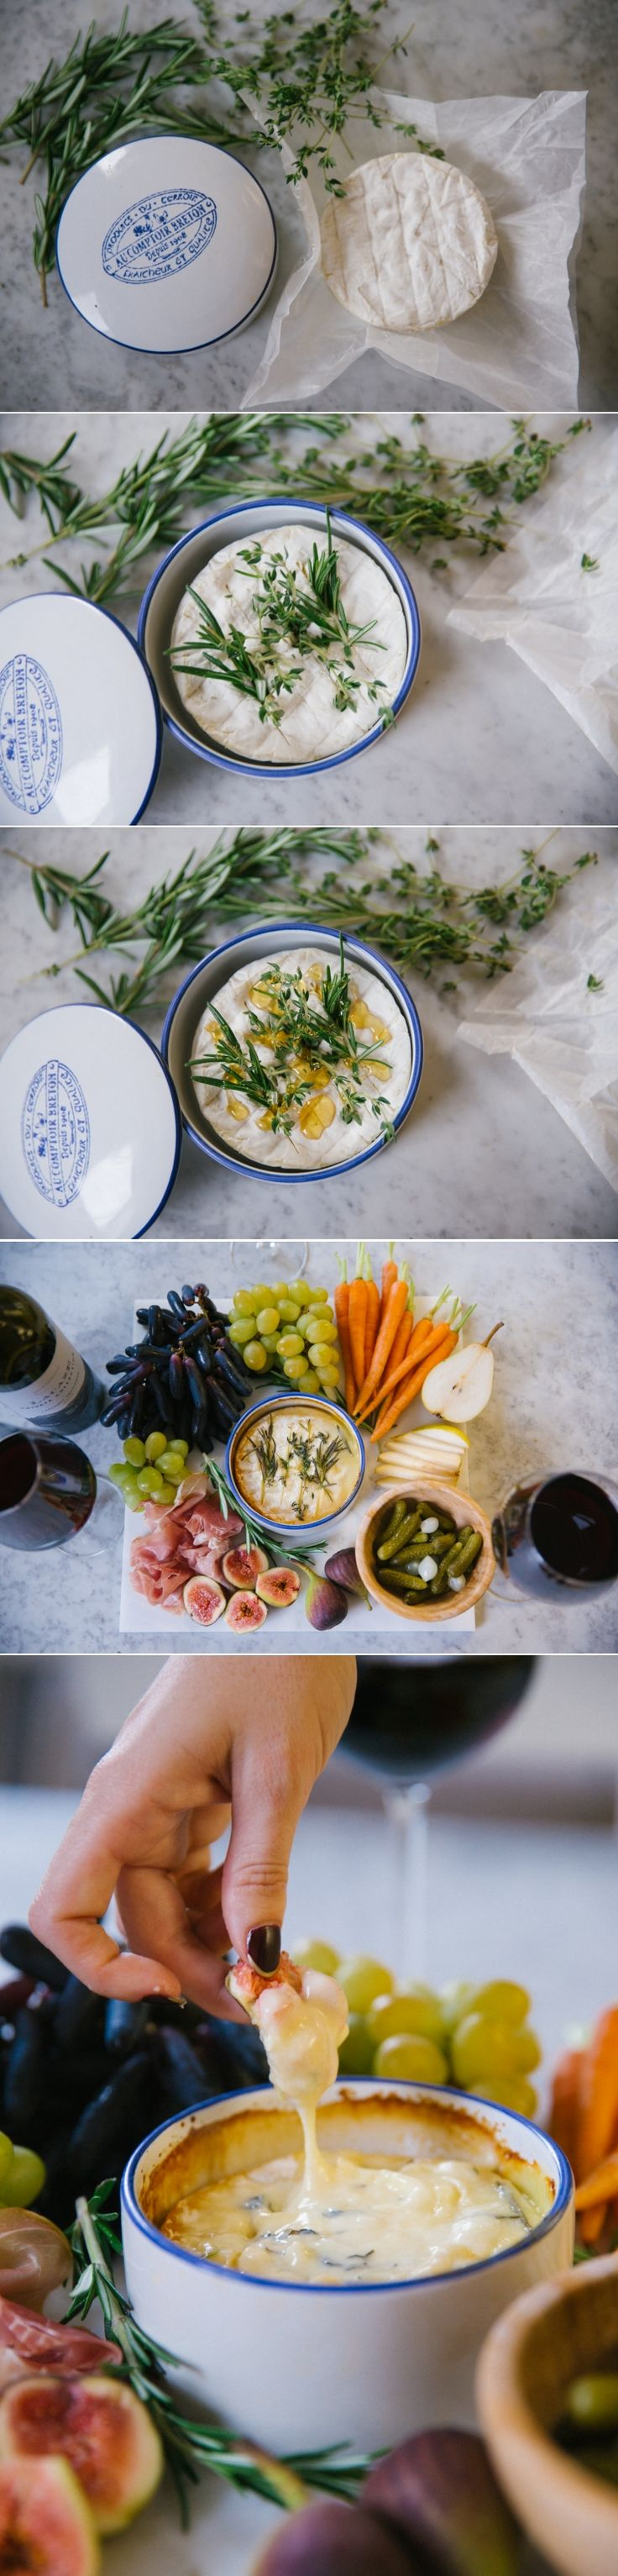 Christmas eve casual buffet ideas - Herb Honey Baked Camembert Makes An Elegant And Easy Starter For Friends Christmas Buffetchristmas Evechristmas